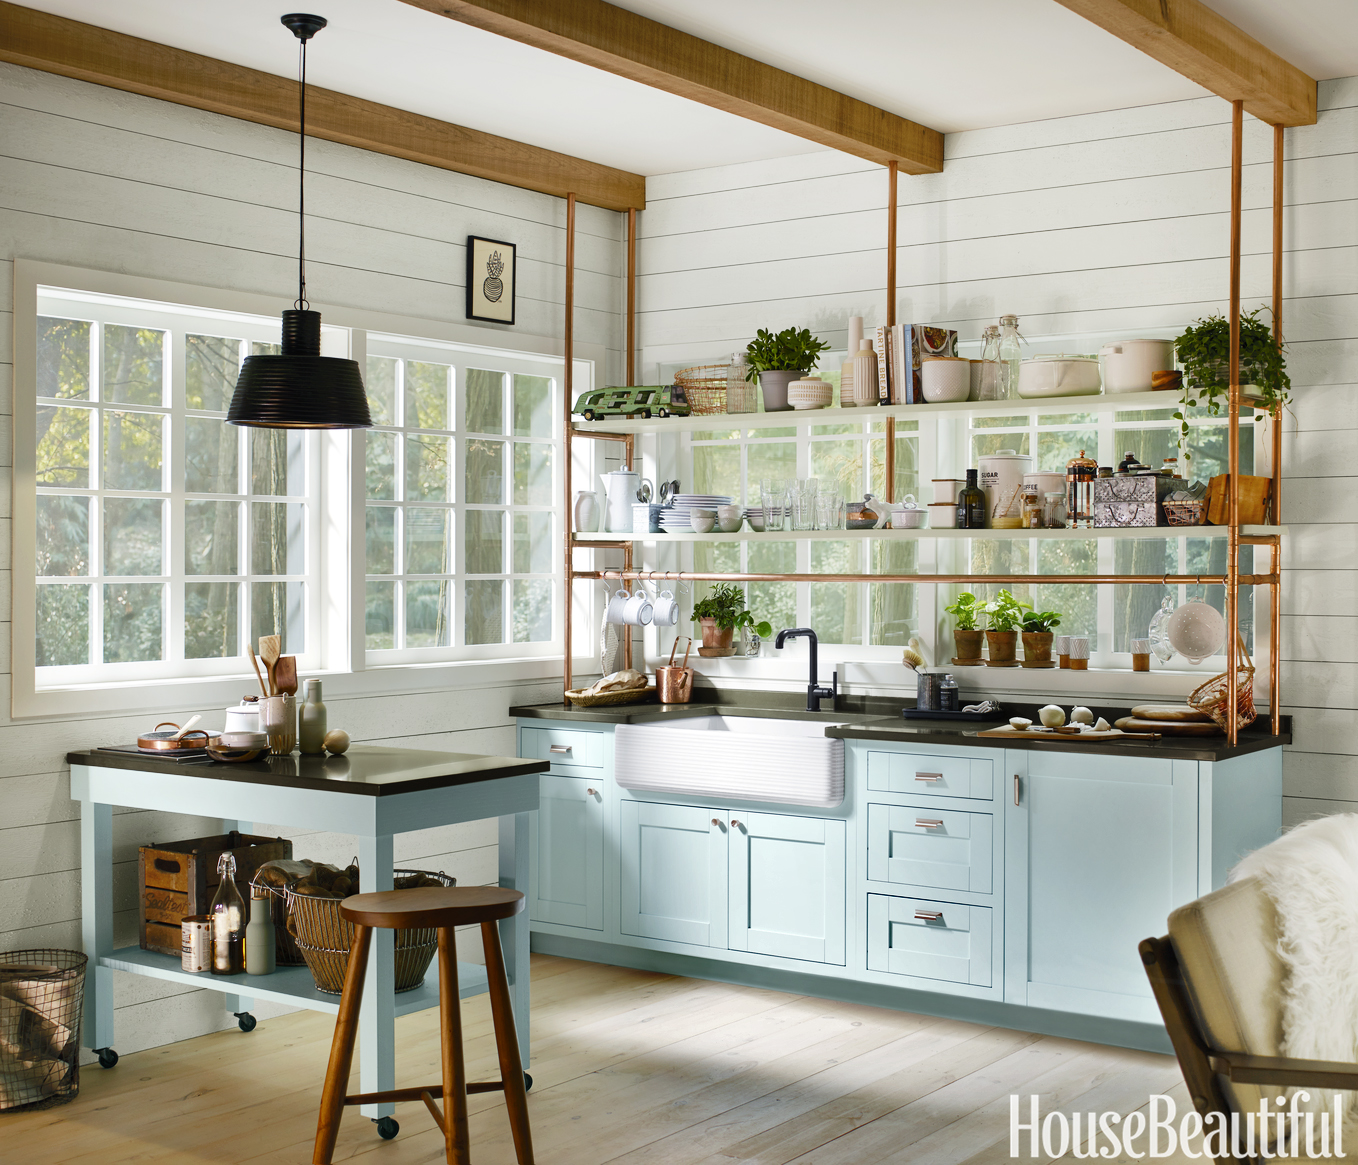 House Beautiful Small Spaces tiny kitchen designedkim lewis